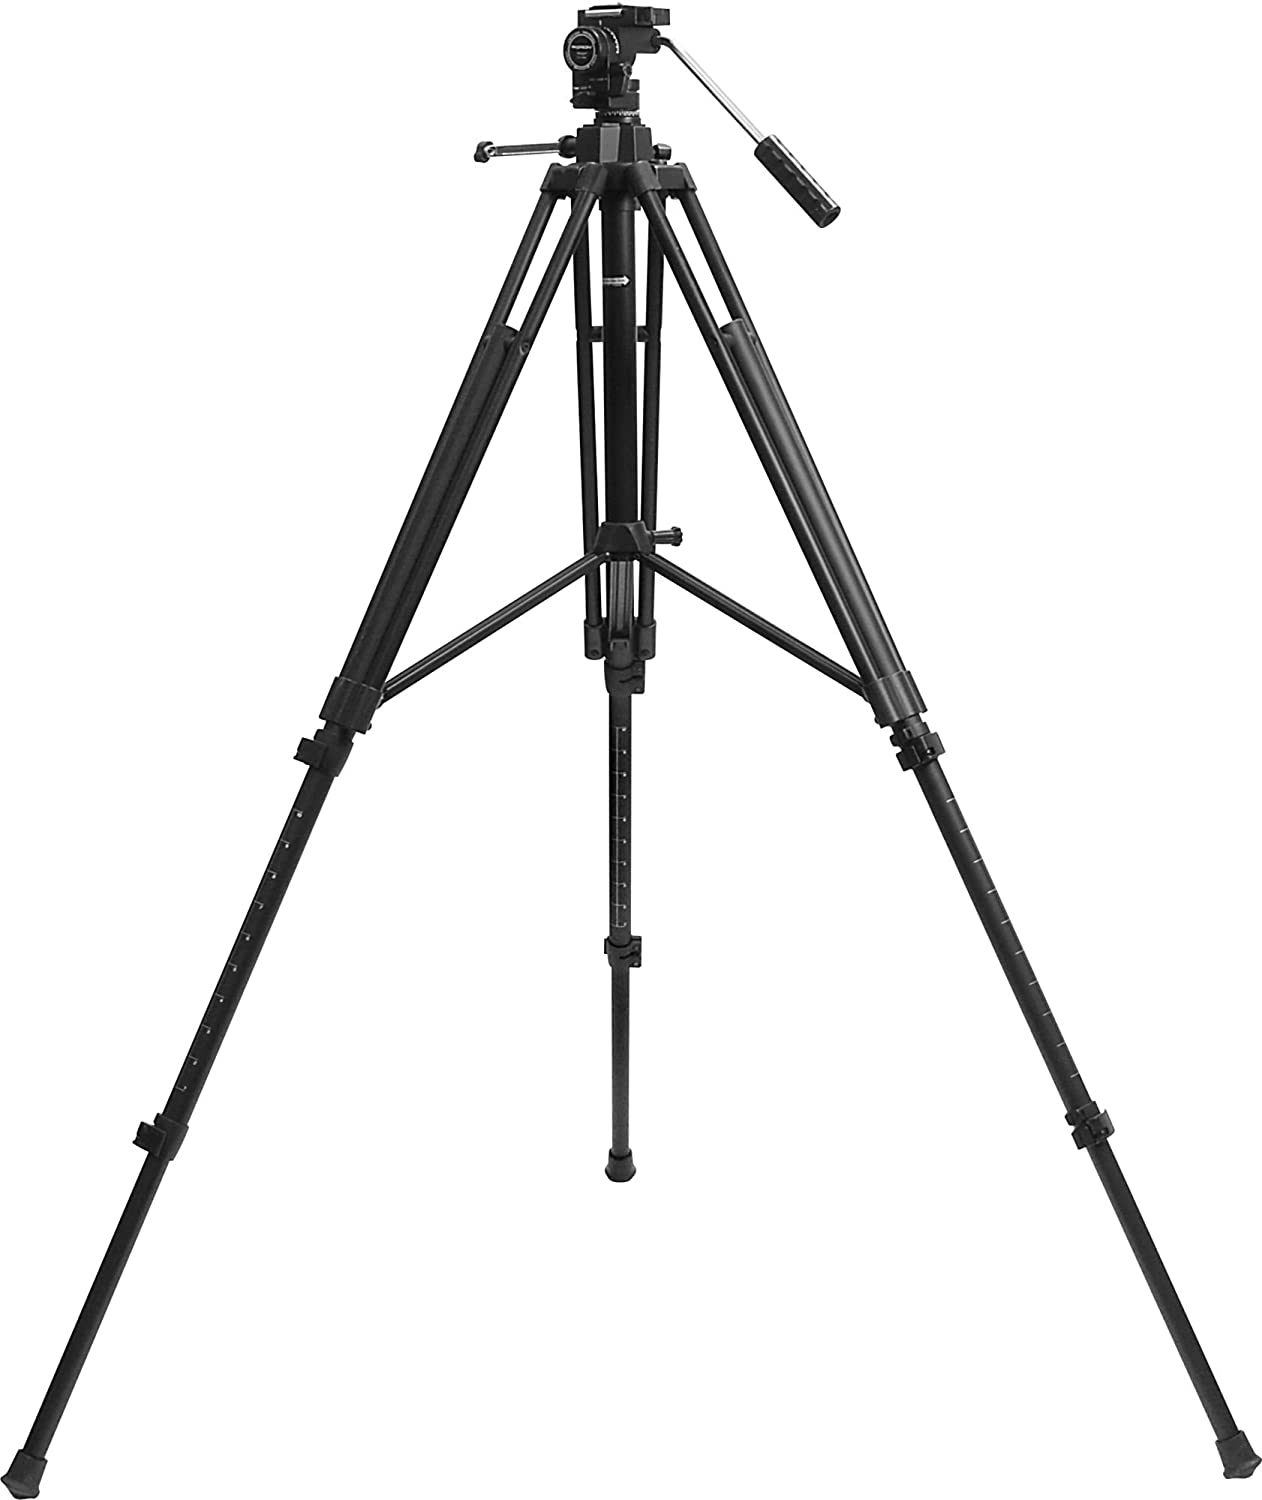 Orion Paragon-Plus XHD Extra Heavy-Duty Tripod Stand for Binoculars (Black) Optronic Technologies Inc 5377